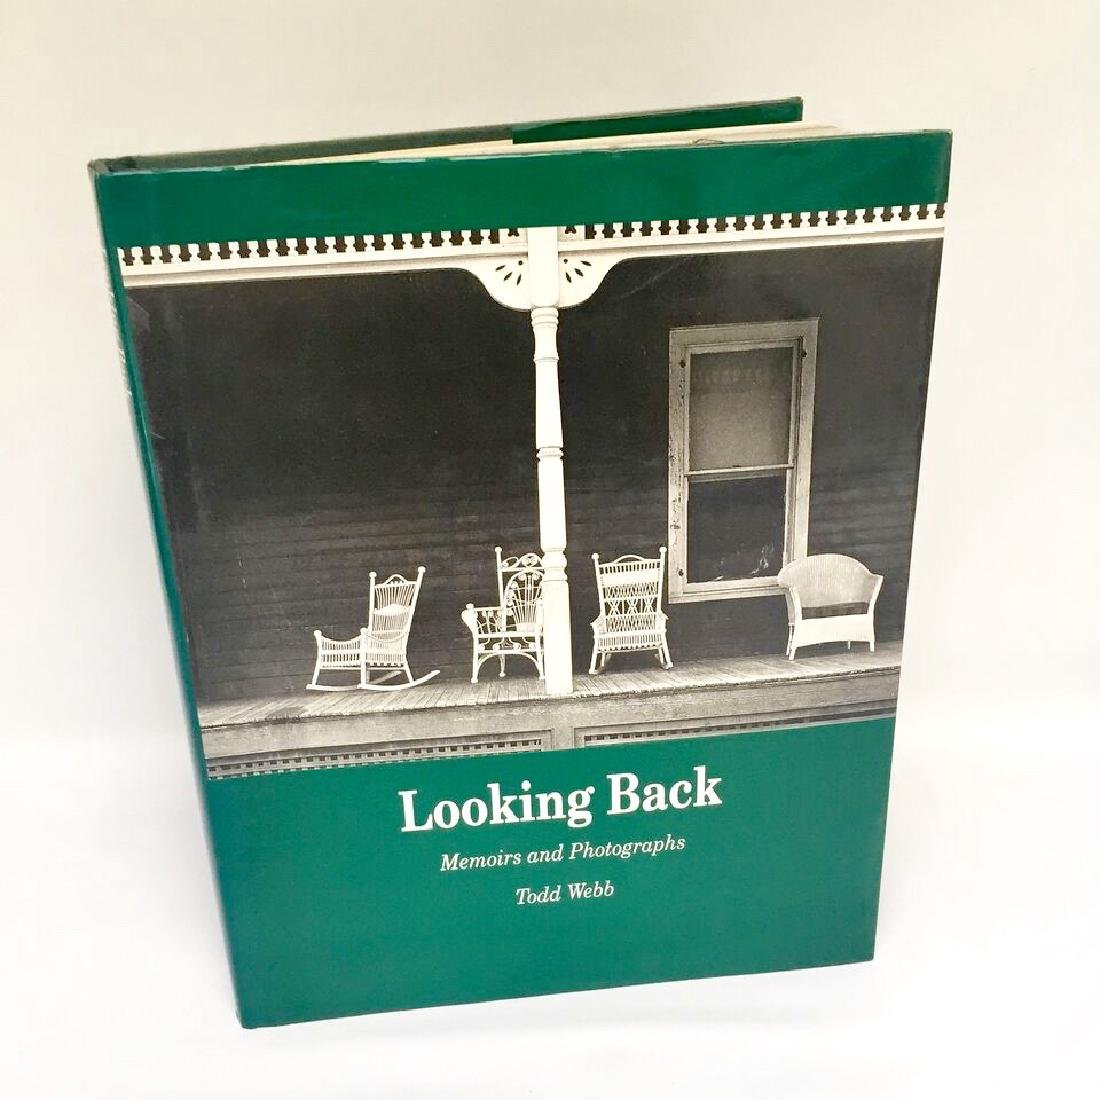 Looking Back Todd Webb First Edition